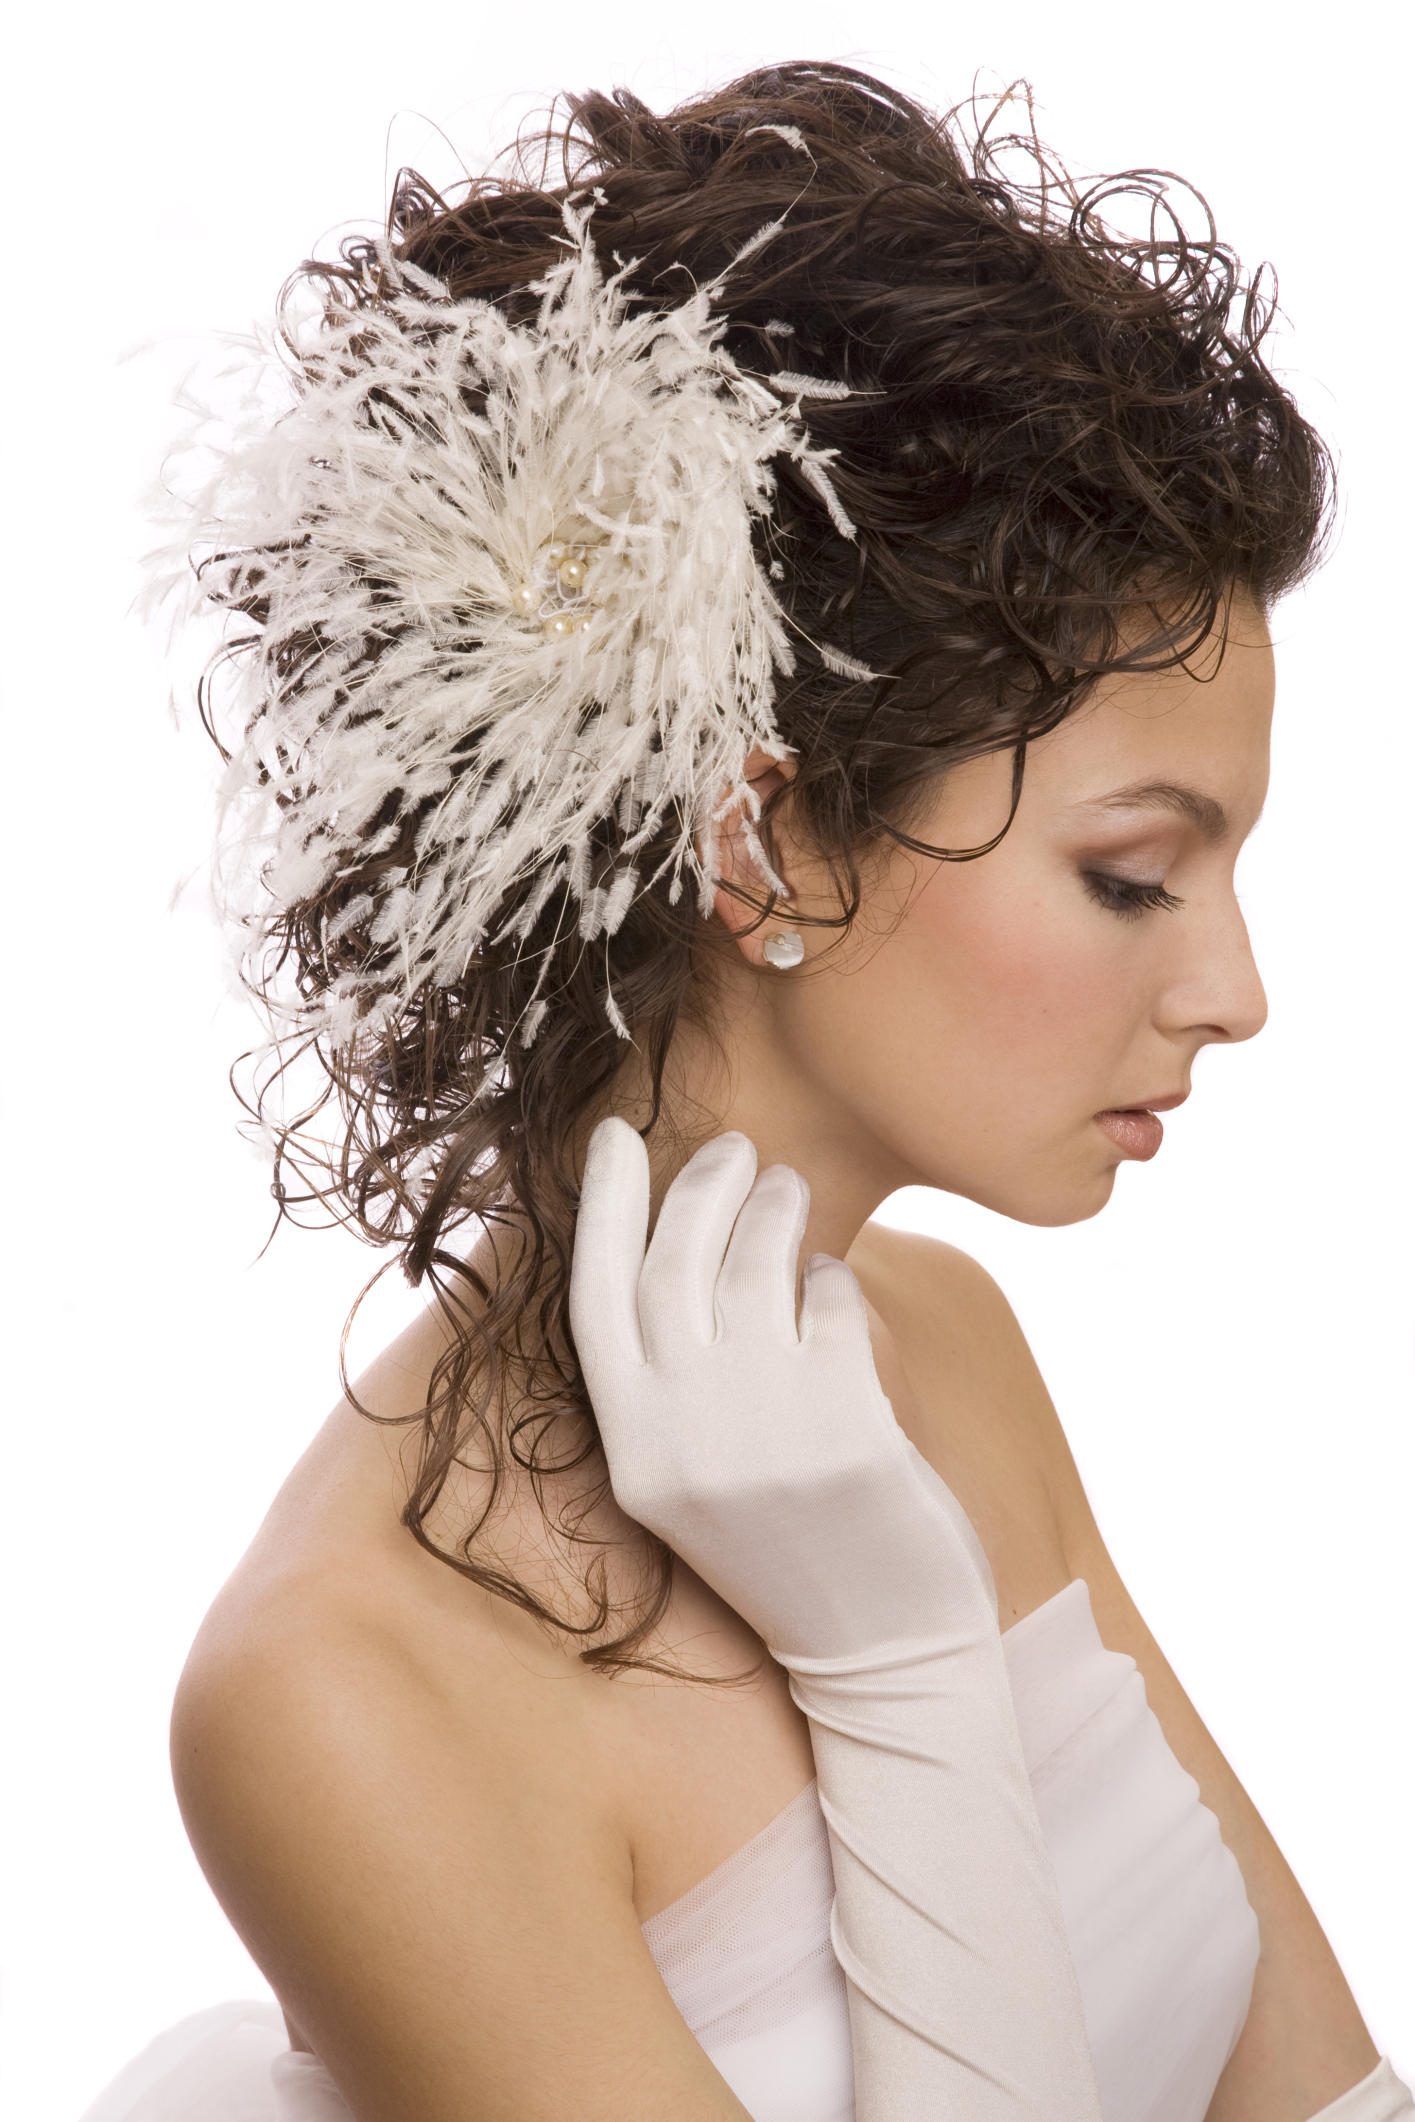 10 cute and stylish wedding hair accessories hair pieces for wedding Alternatives to Wedding Veils 10 Cute and Stylish Wedding Hair Accessories Shape Magazine